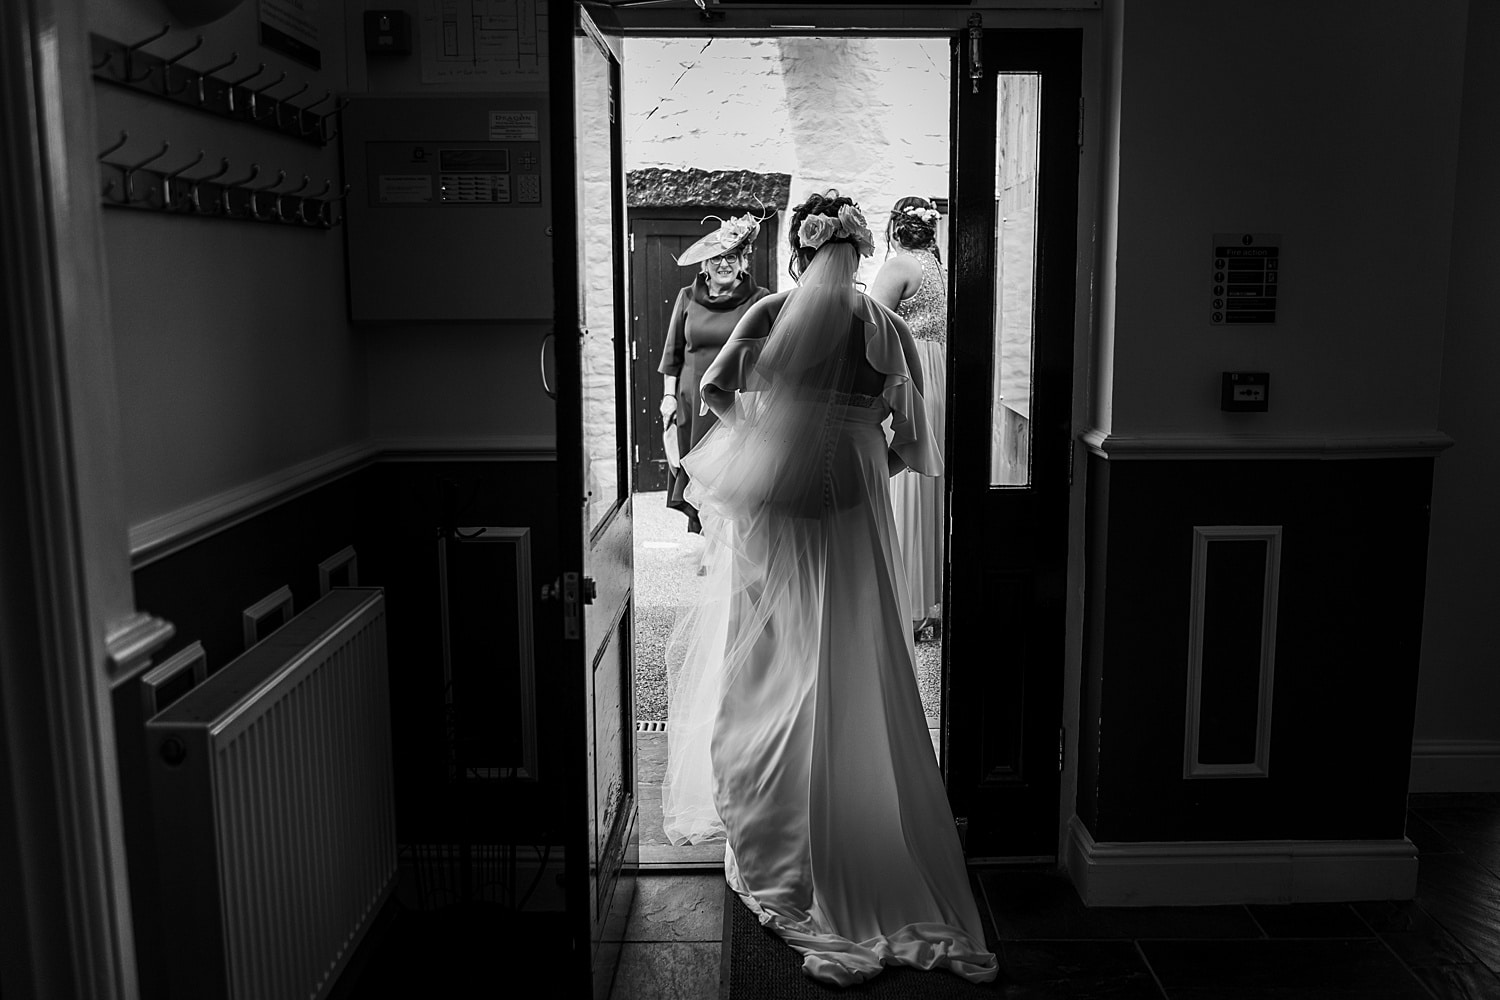 Bride leaving through door